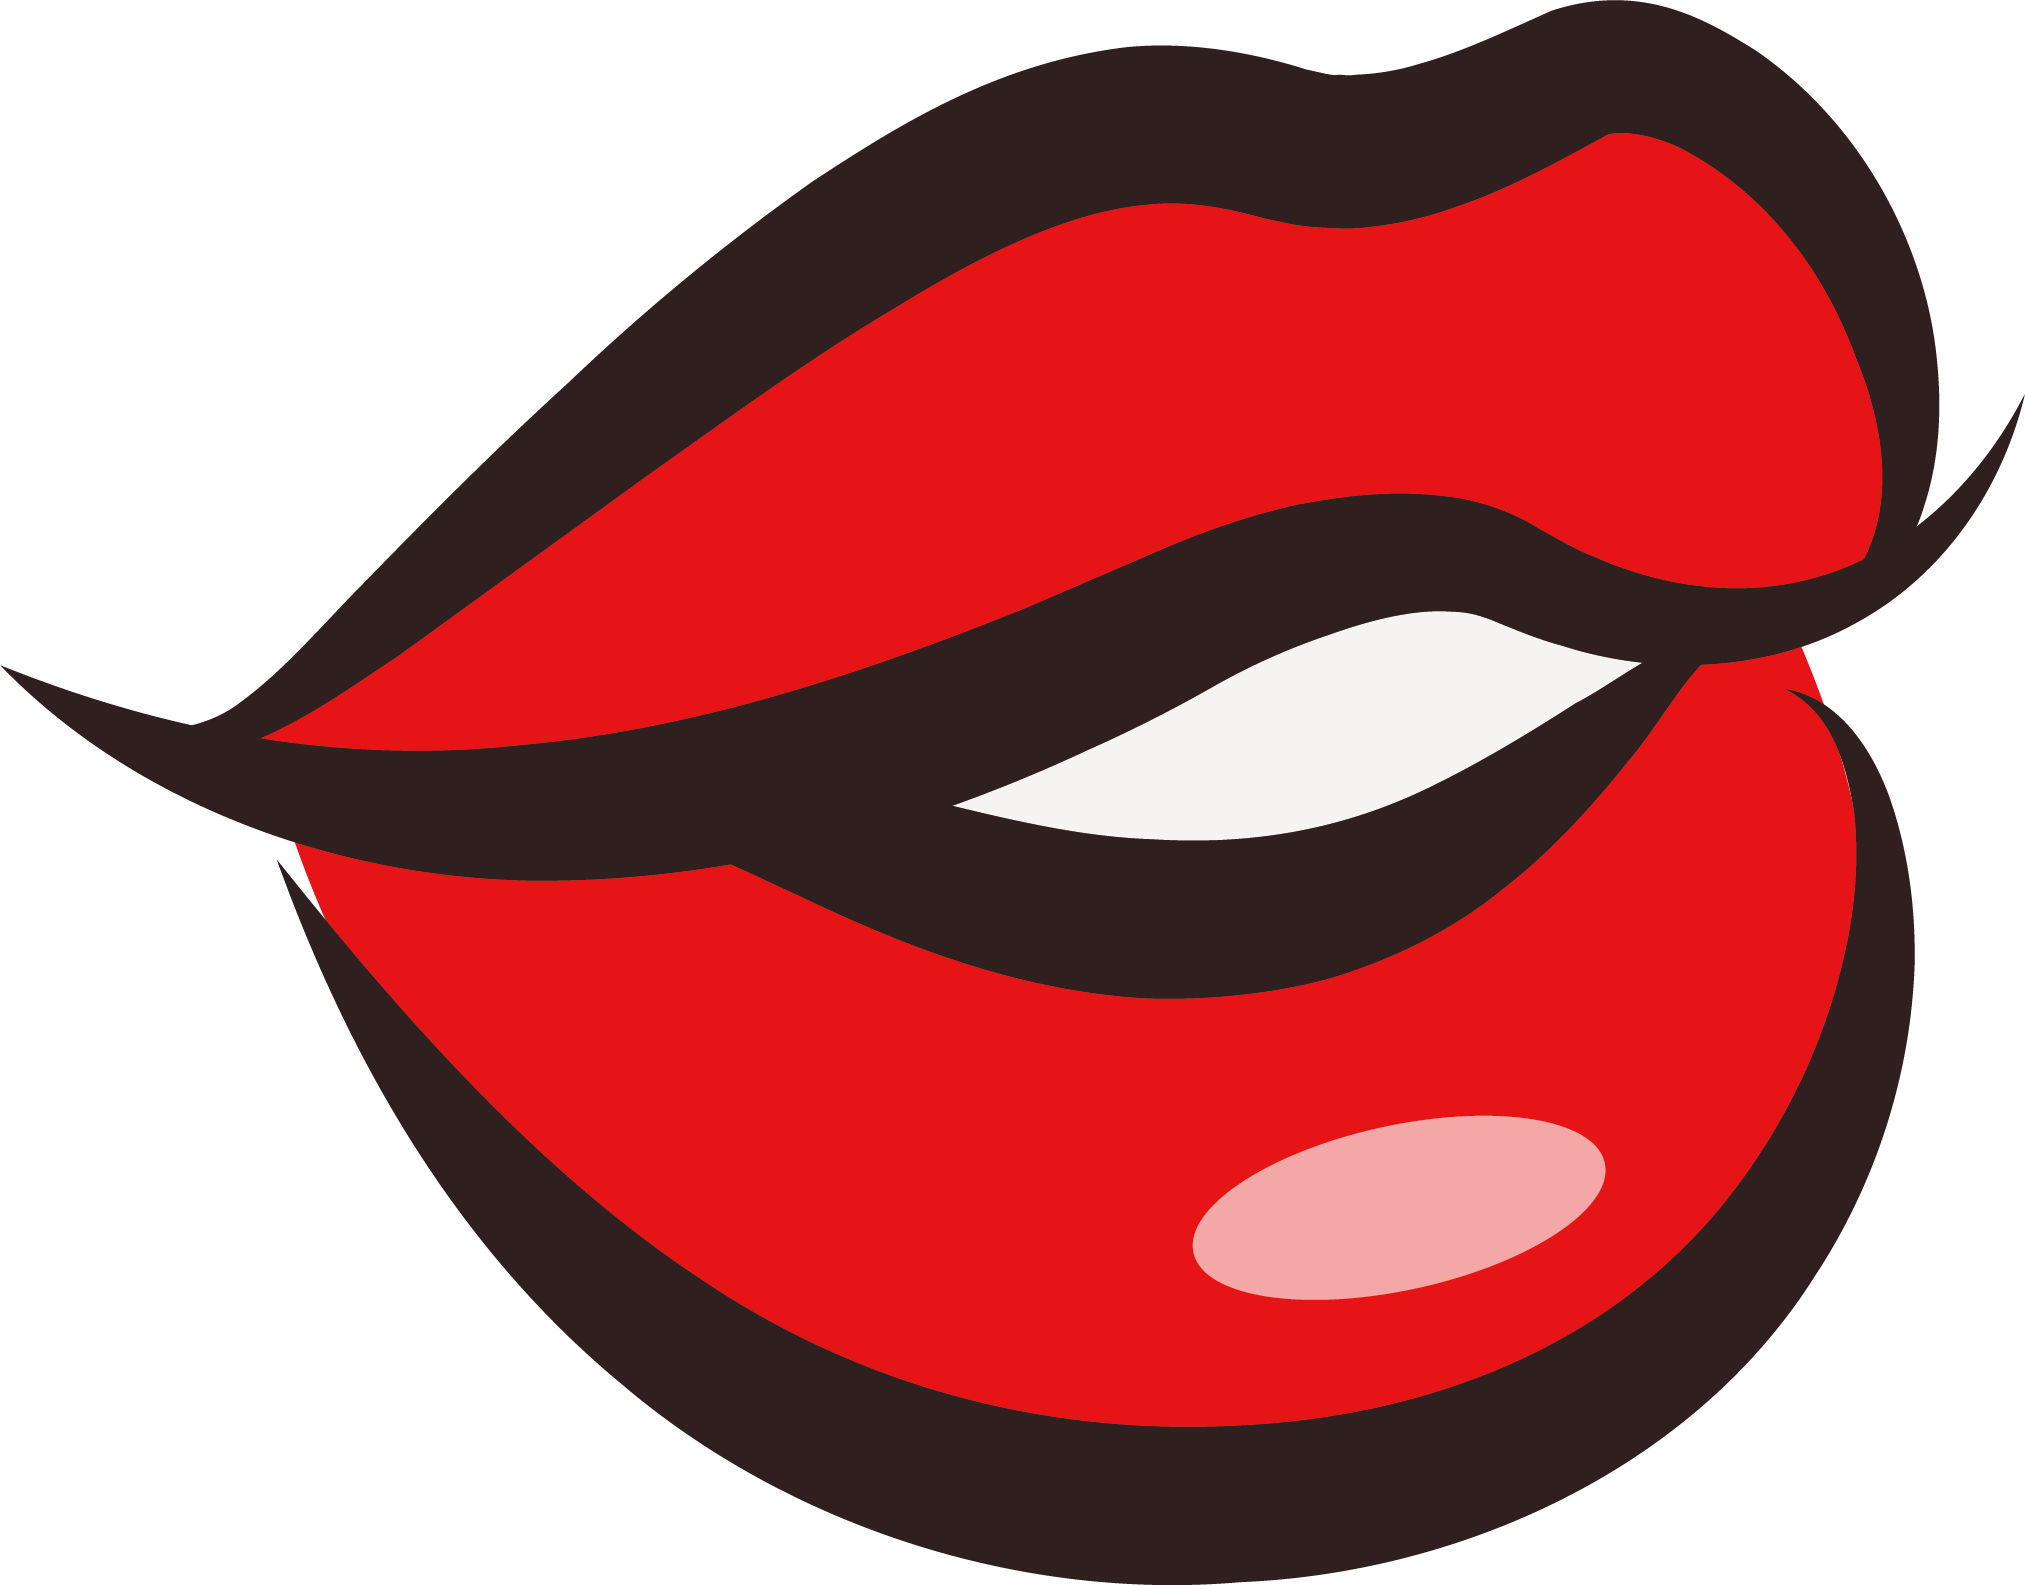 Mouth clipart animated, Mouth animated Transparent FREE for.